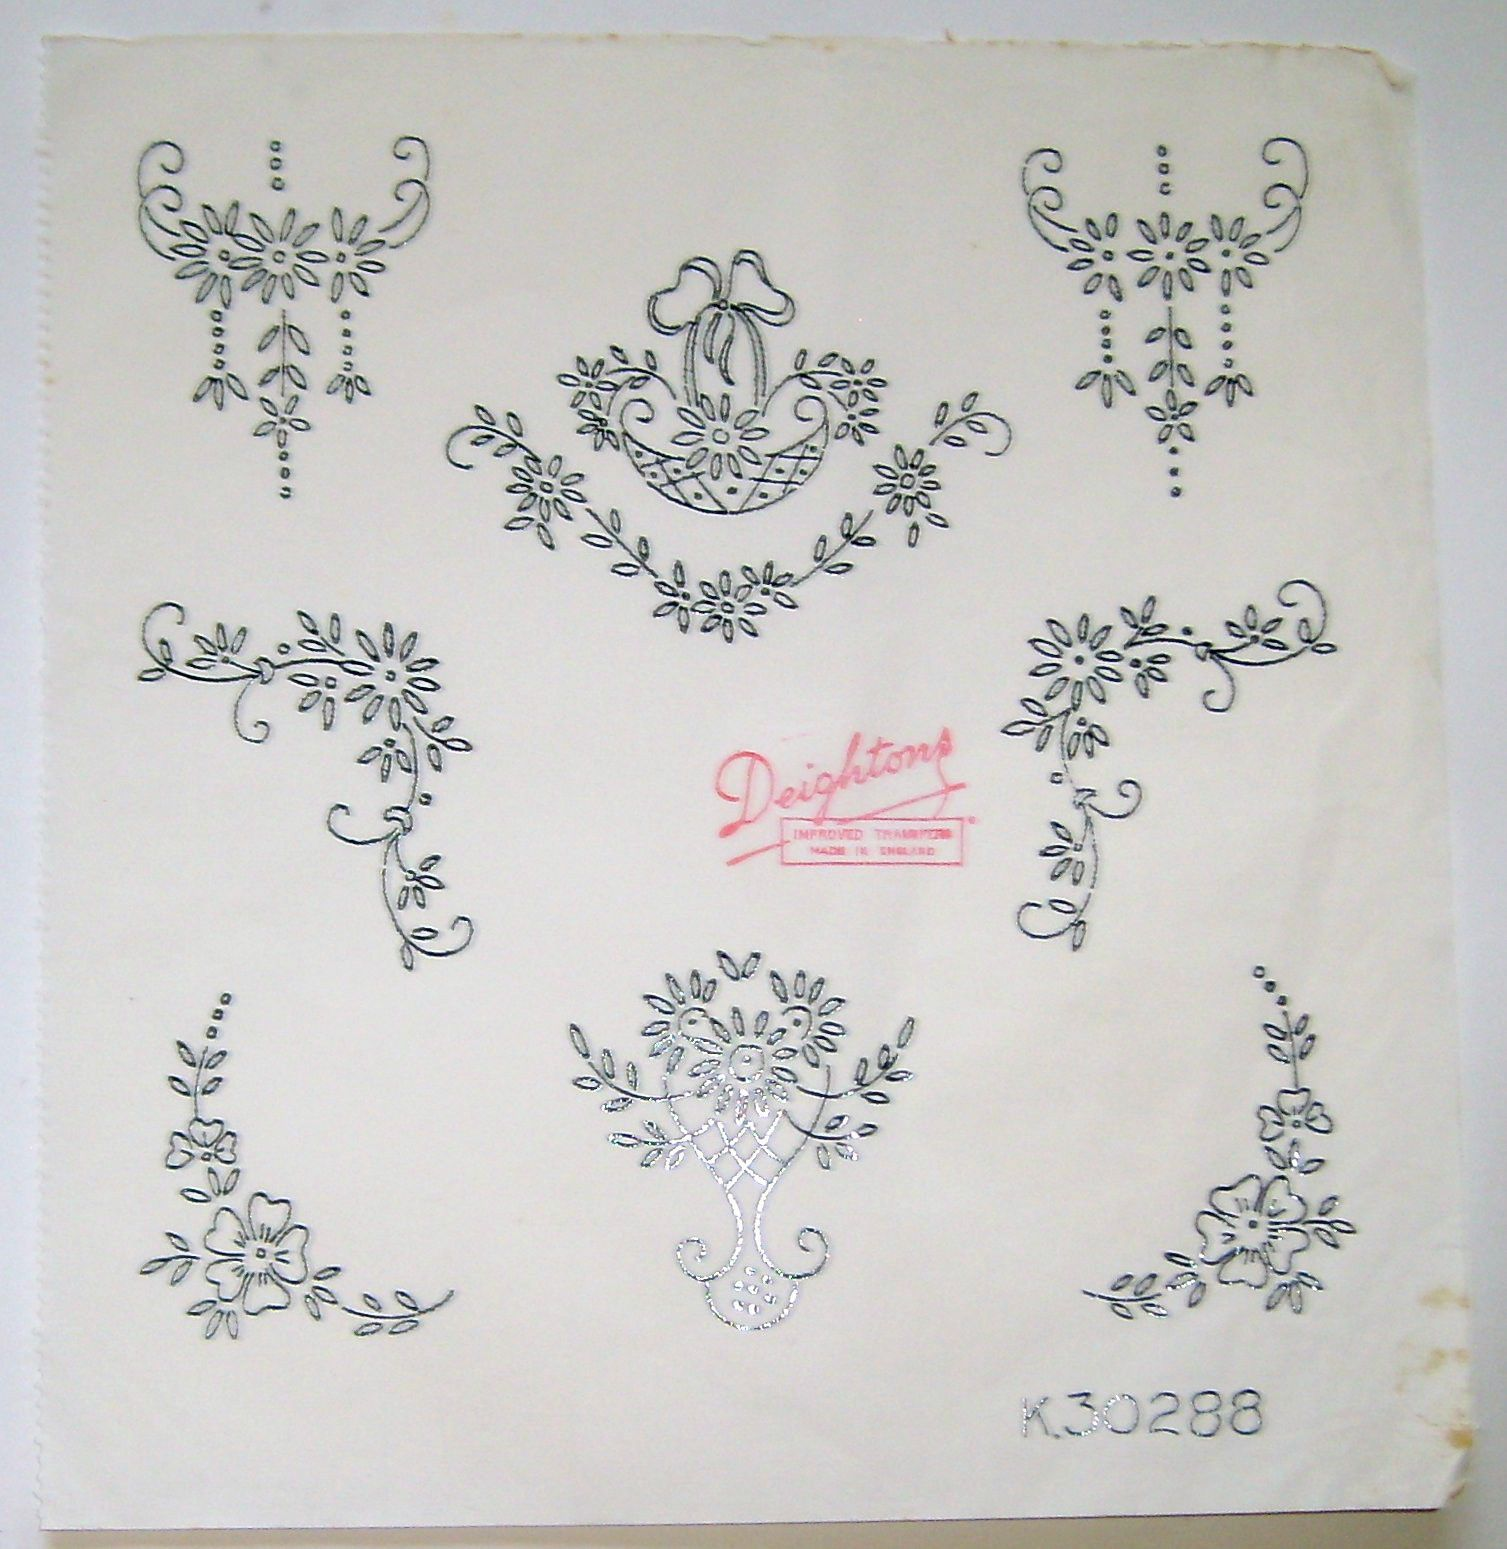 Vintage Deighton embroidery transfer - Daisy flowers baskets ...